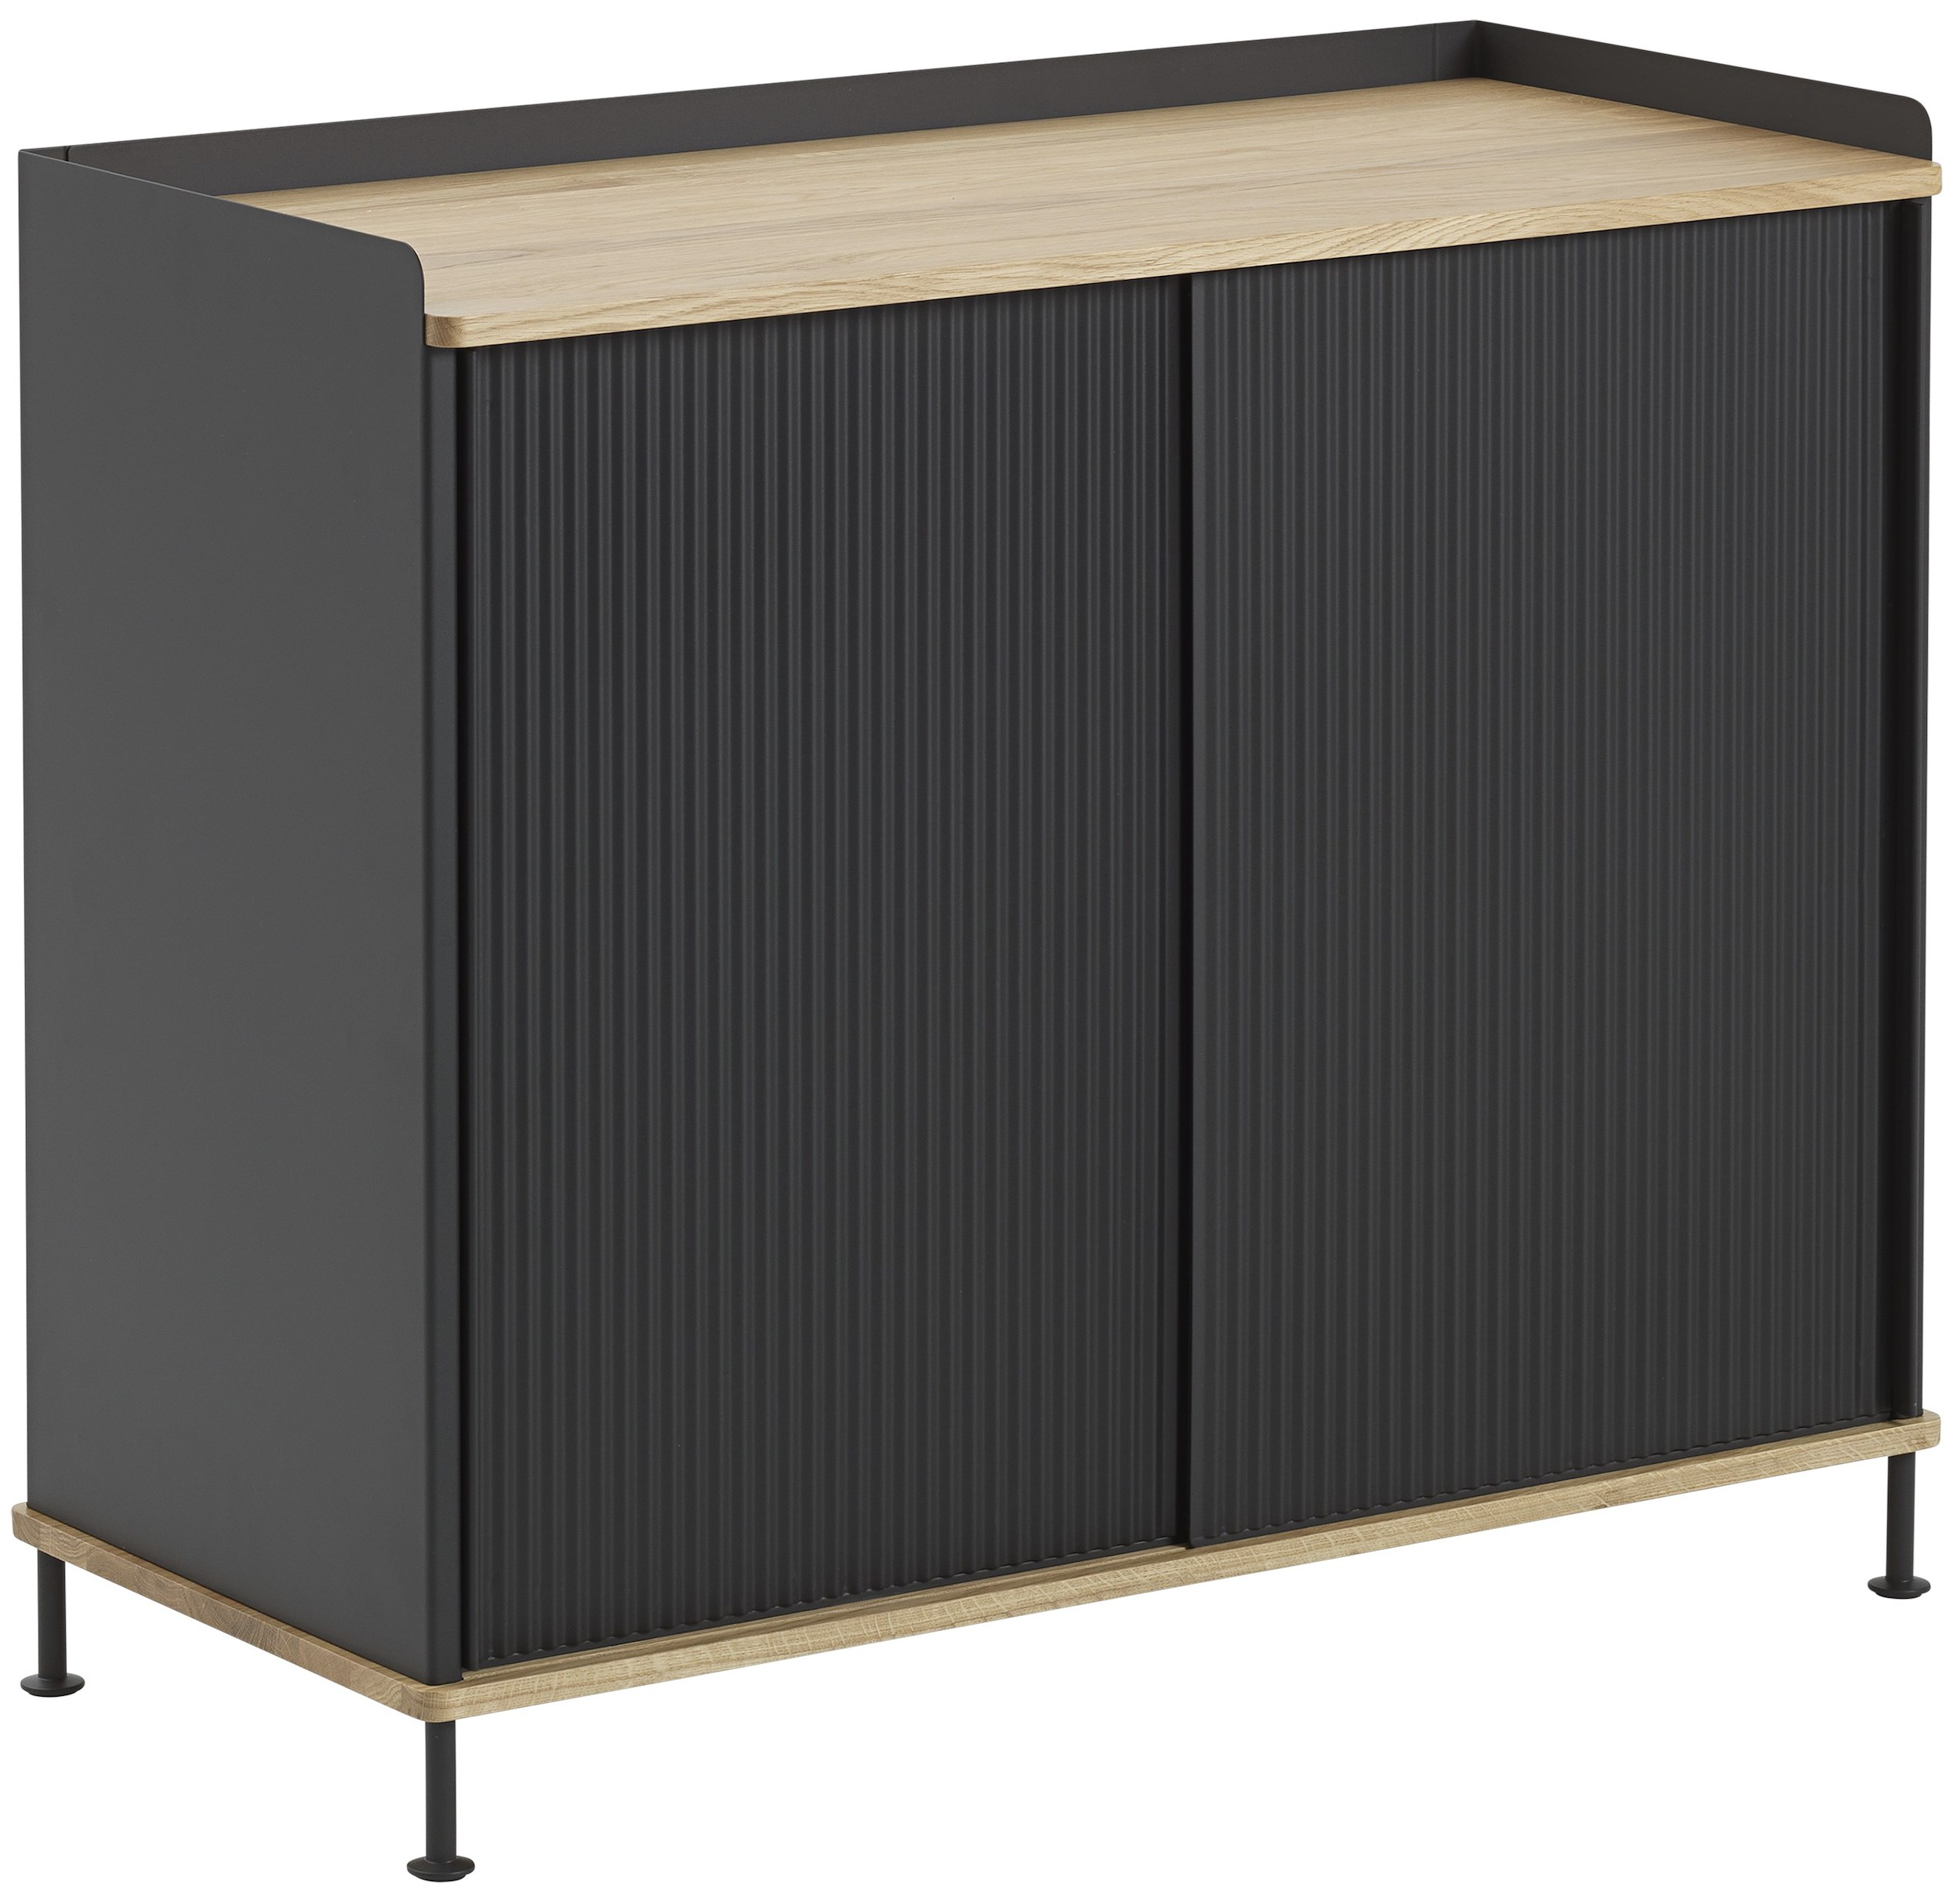 muuto enfold sideboard design thomas bentzen 2018. Black Bedroom Furniture Sets. Home Design Ideas